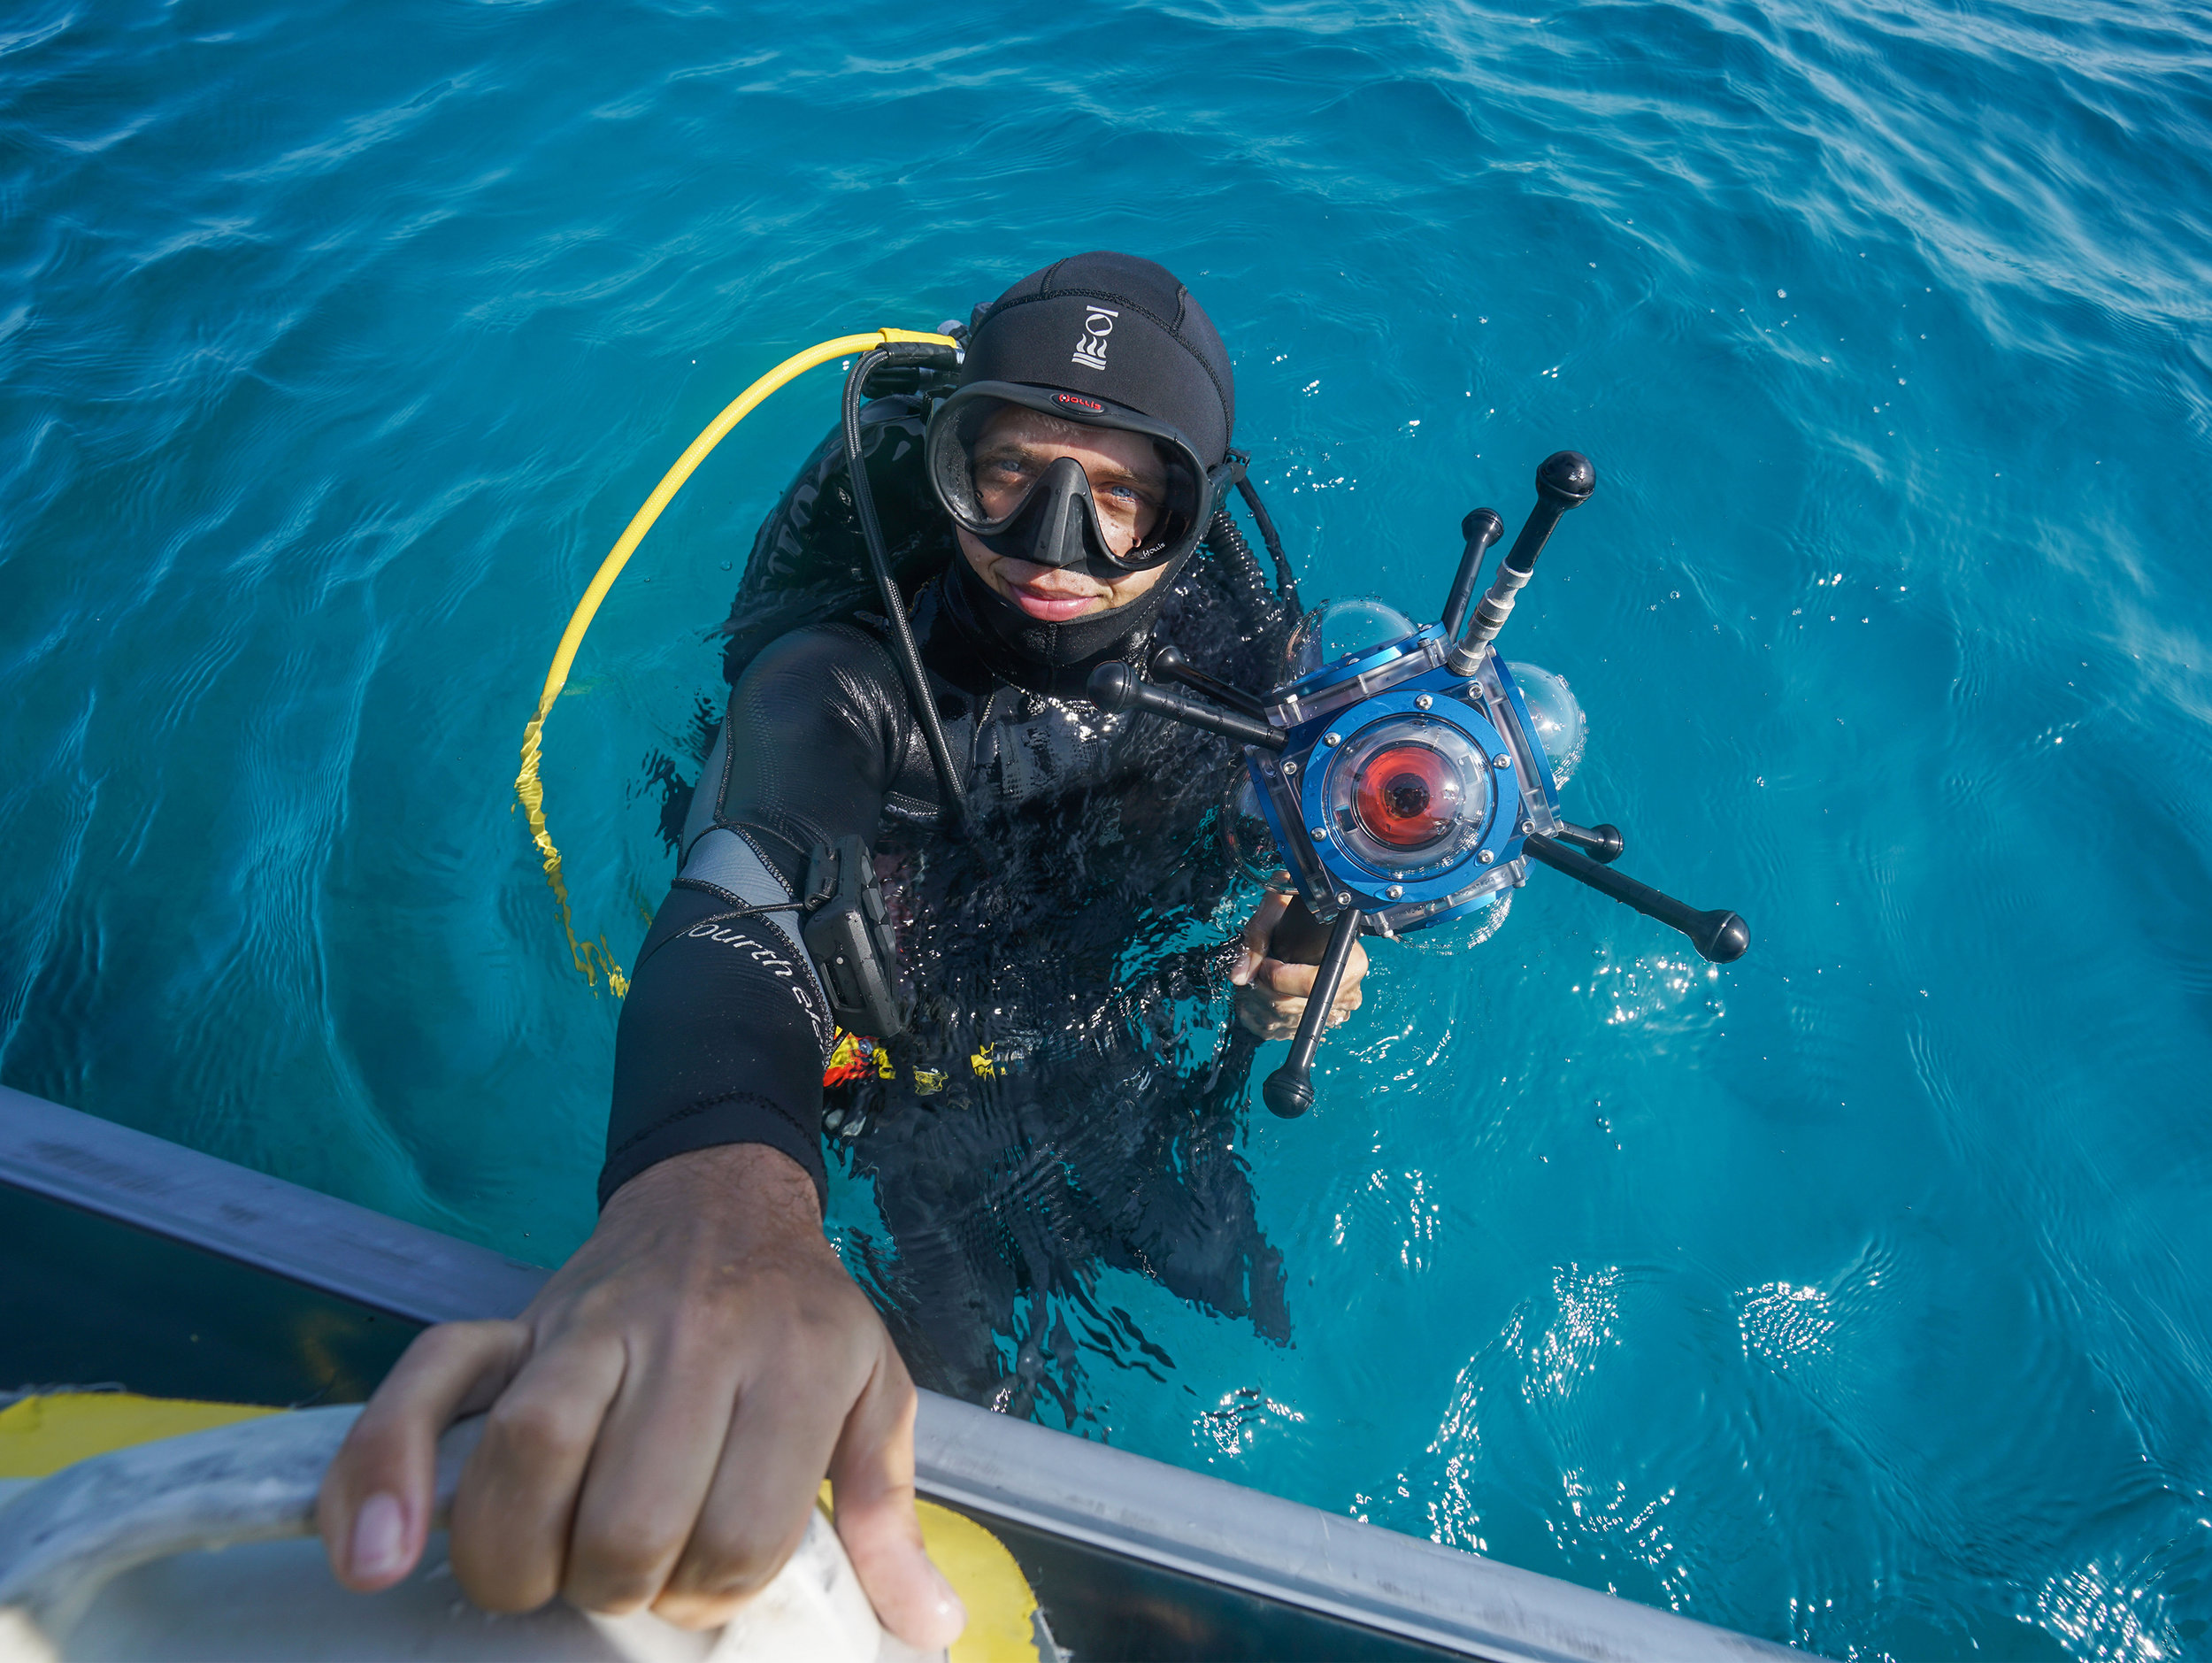 DannyUnderwater_About_Red Sea VR Rig at Surface.jpg